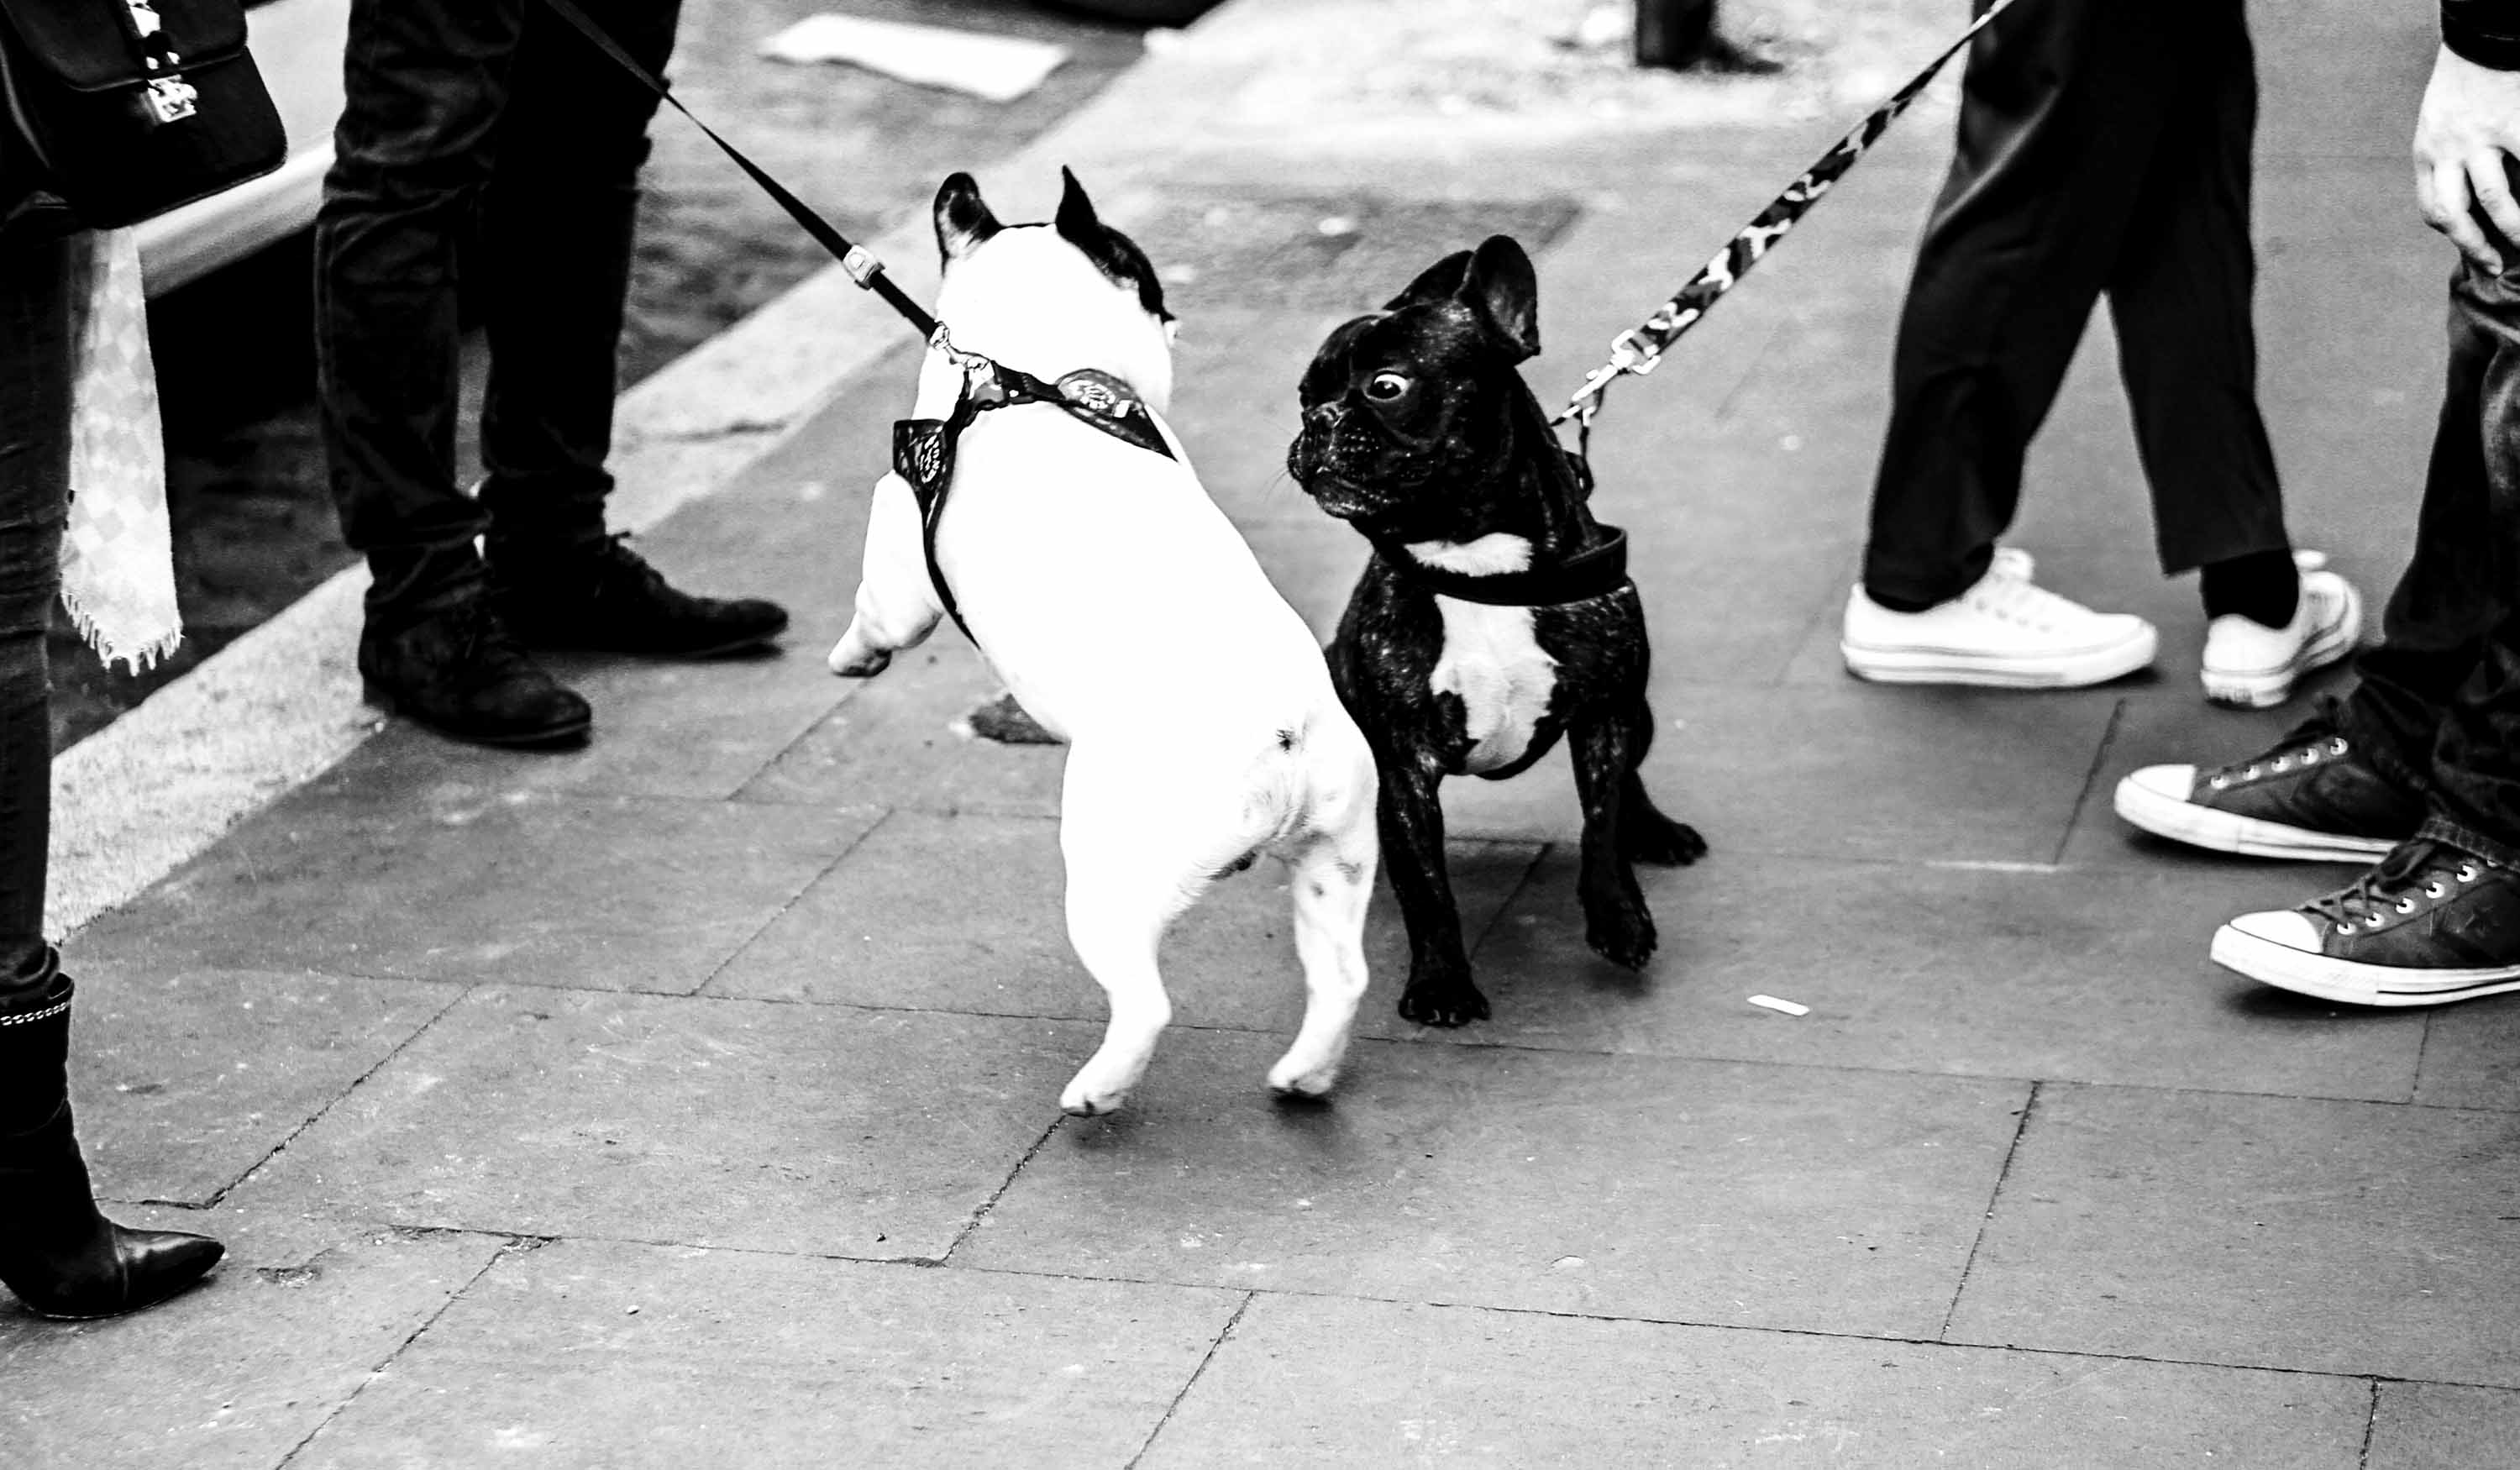 leashed-dogs-hipster-feet Photo credit to Filip Mishevski via Unsplash (su_-0-UpP0M)